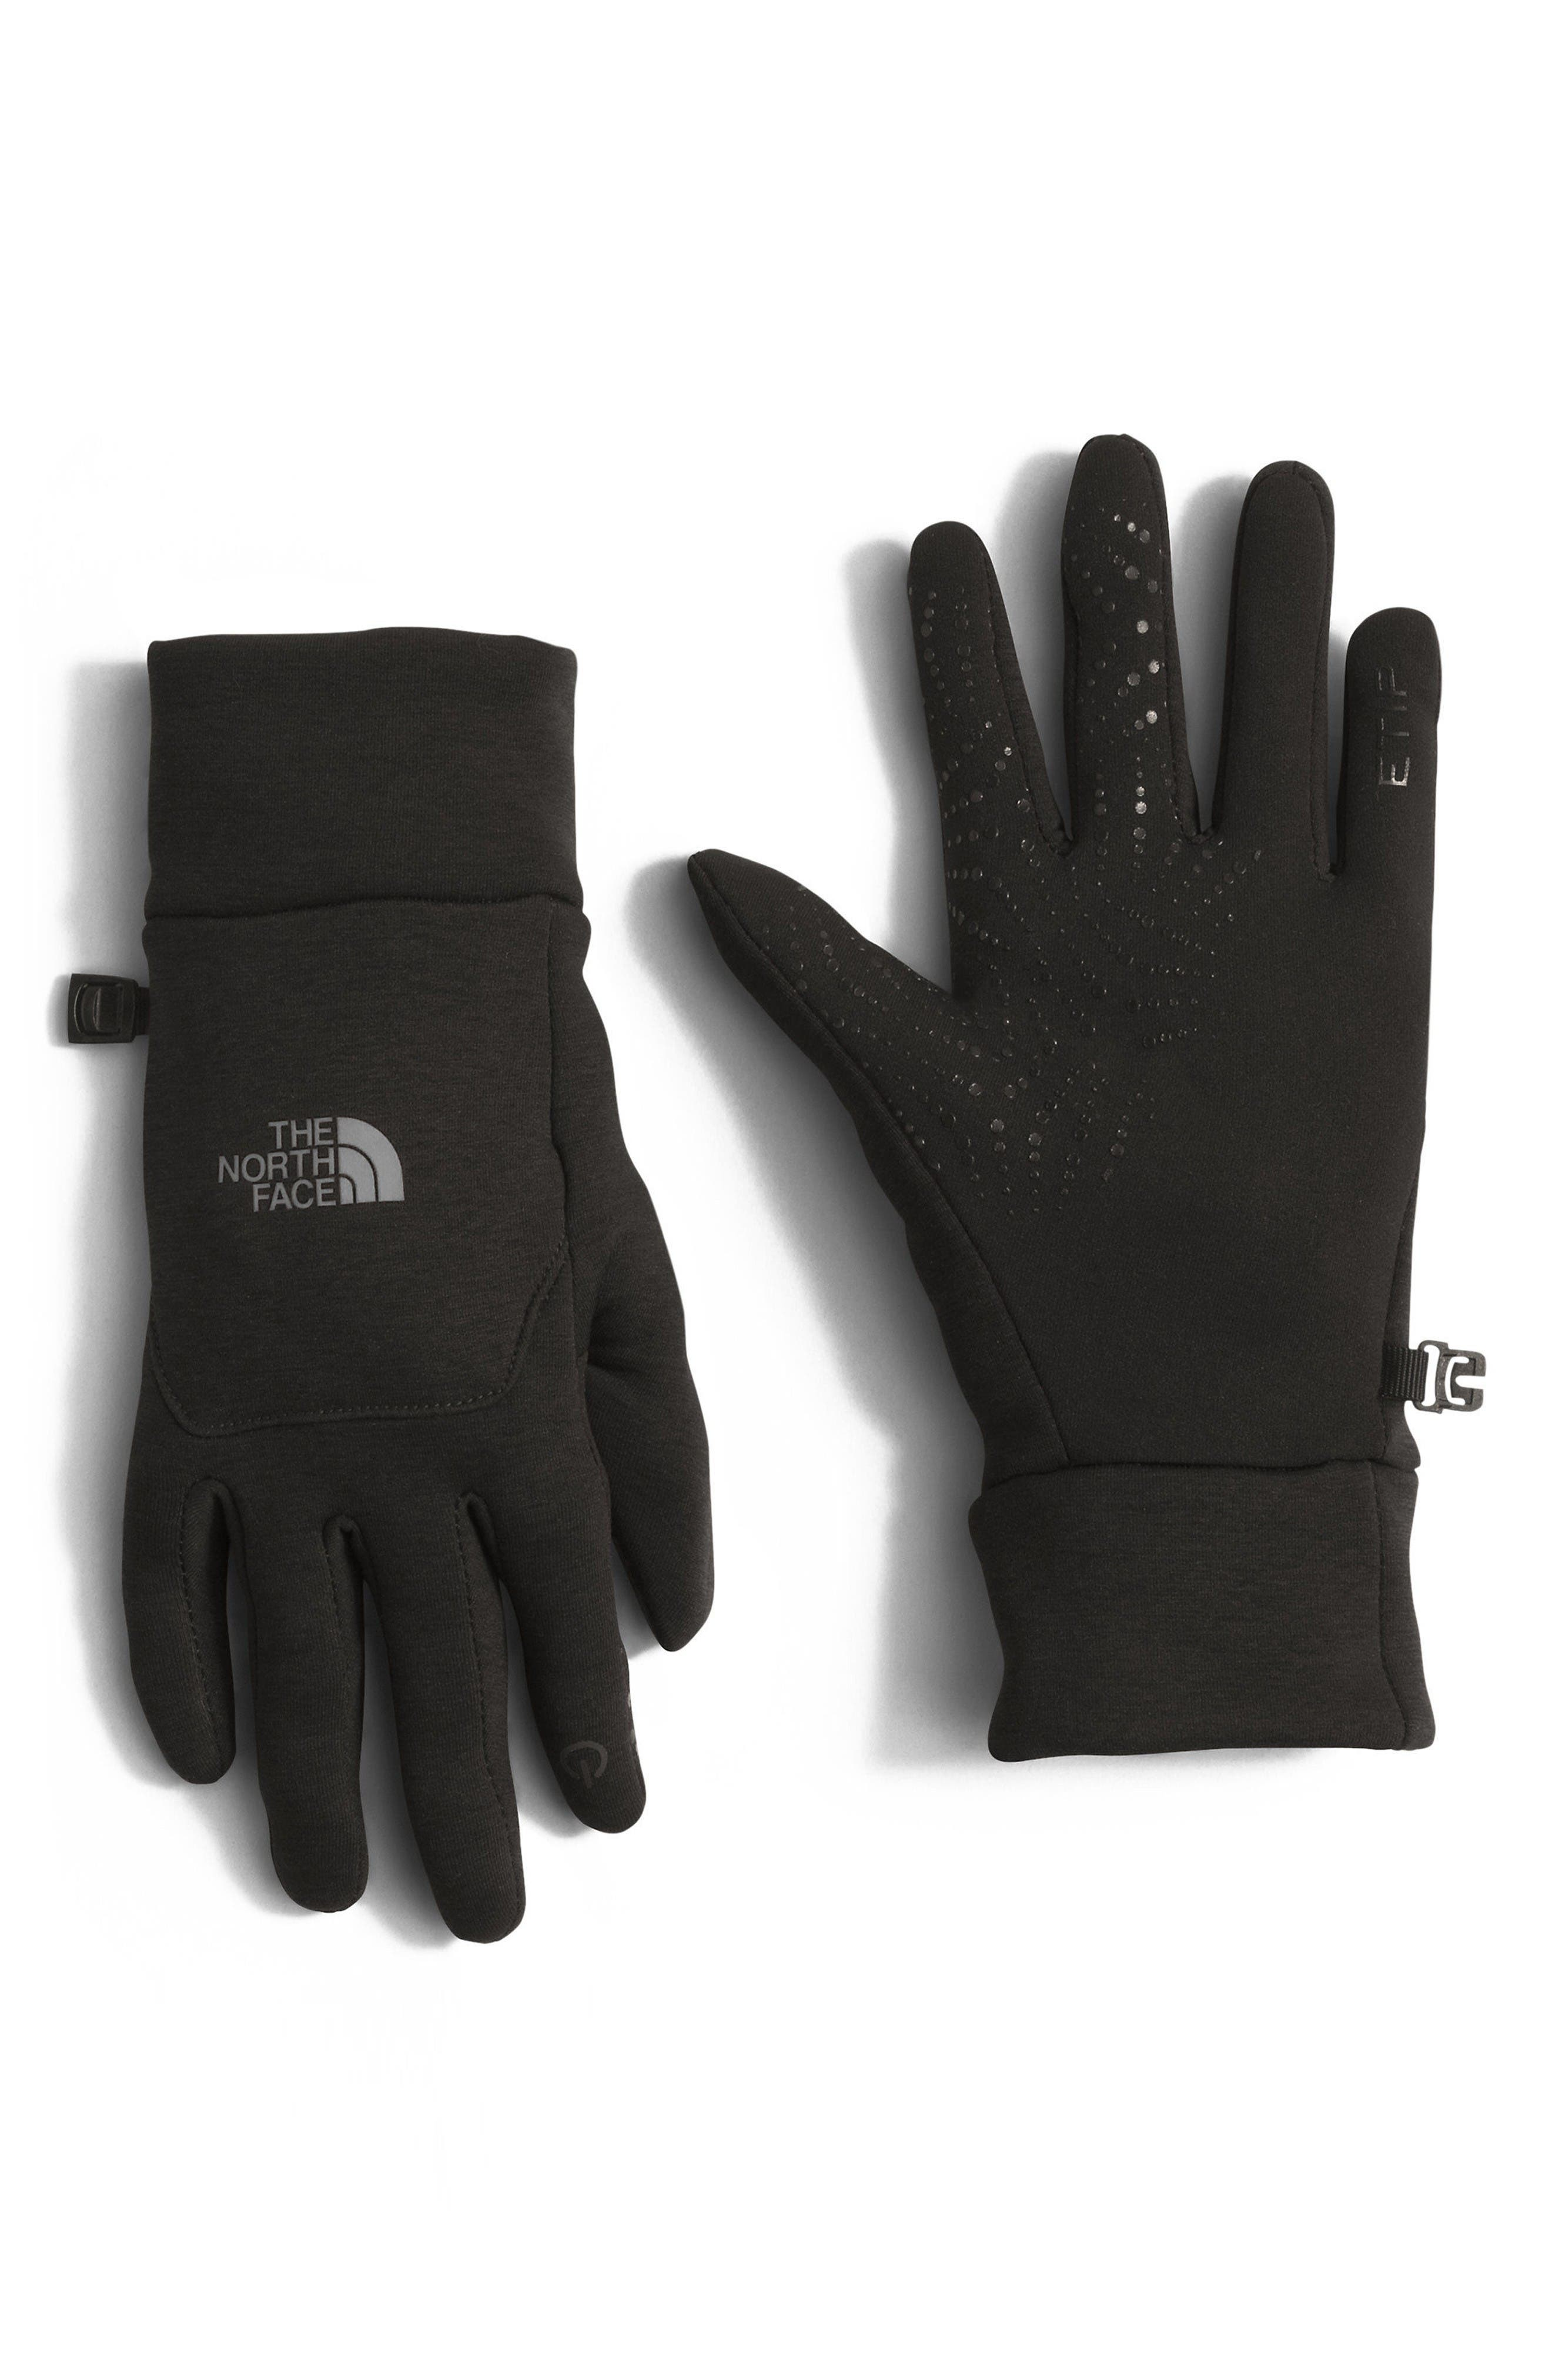 Alternate Image 1 Selected - The North Face 'Etip' Tech Gloves